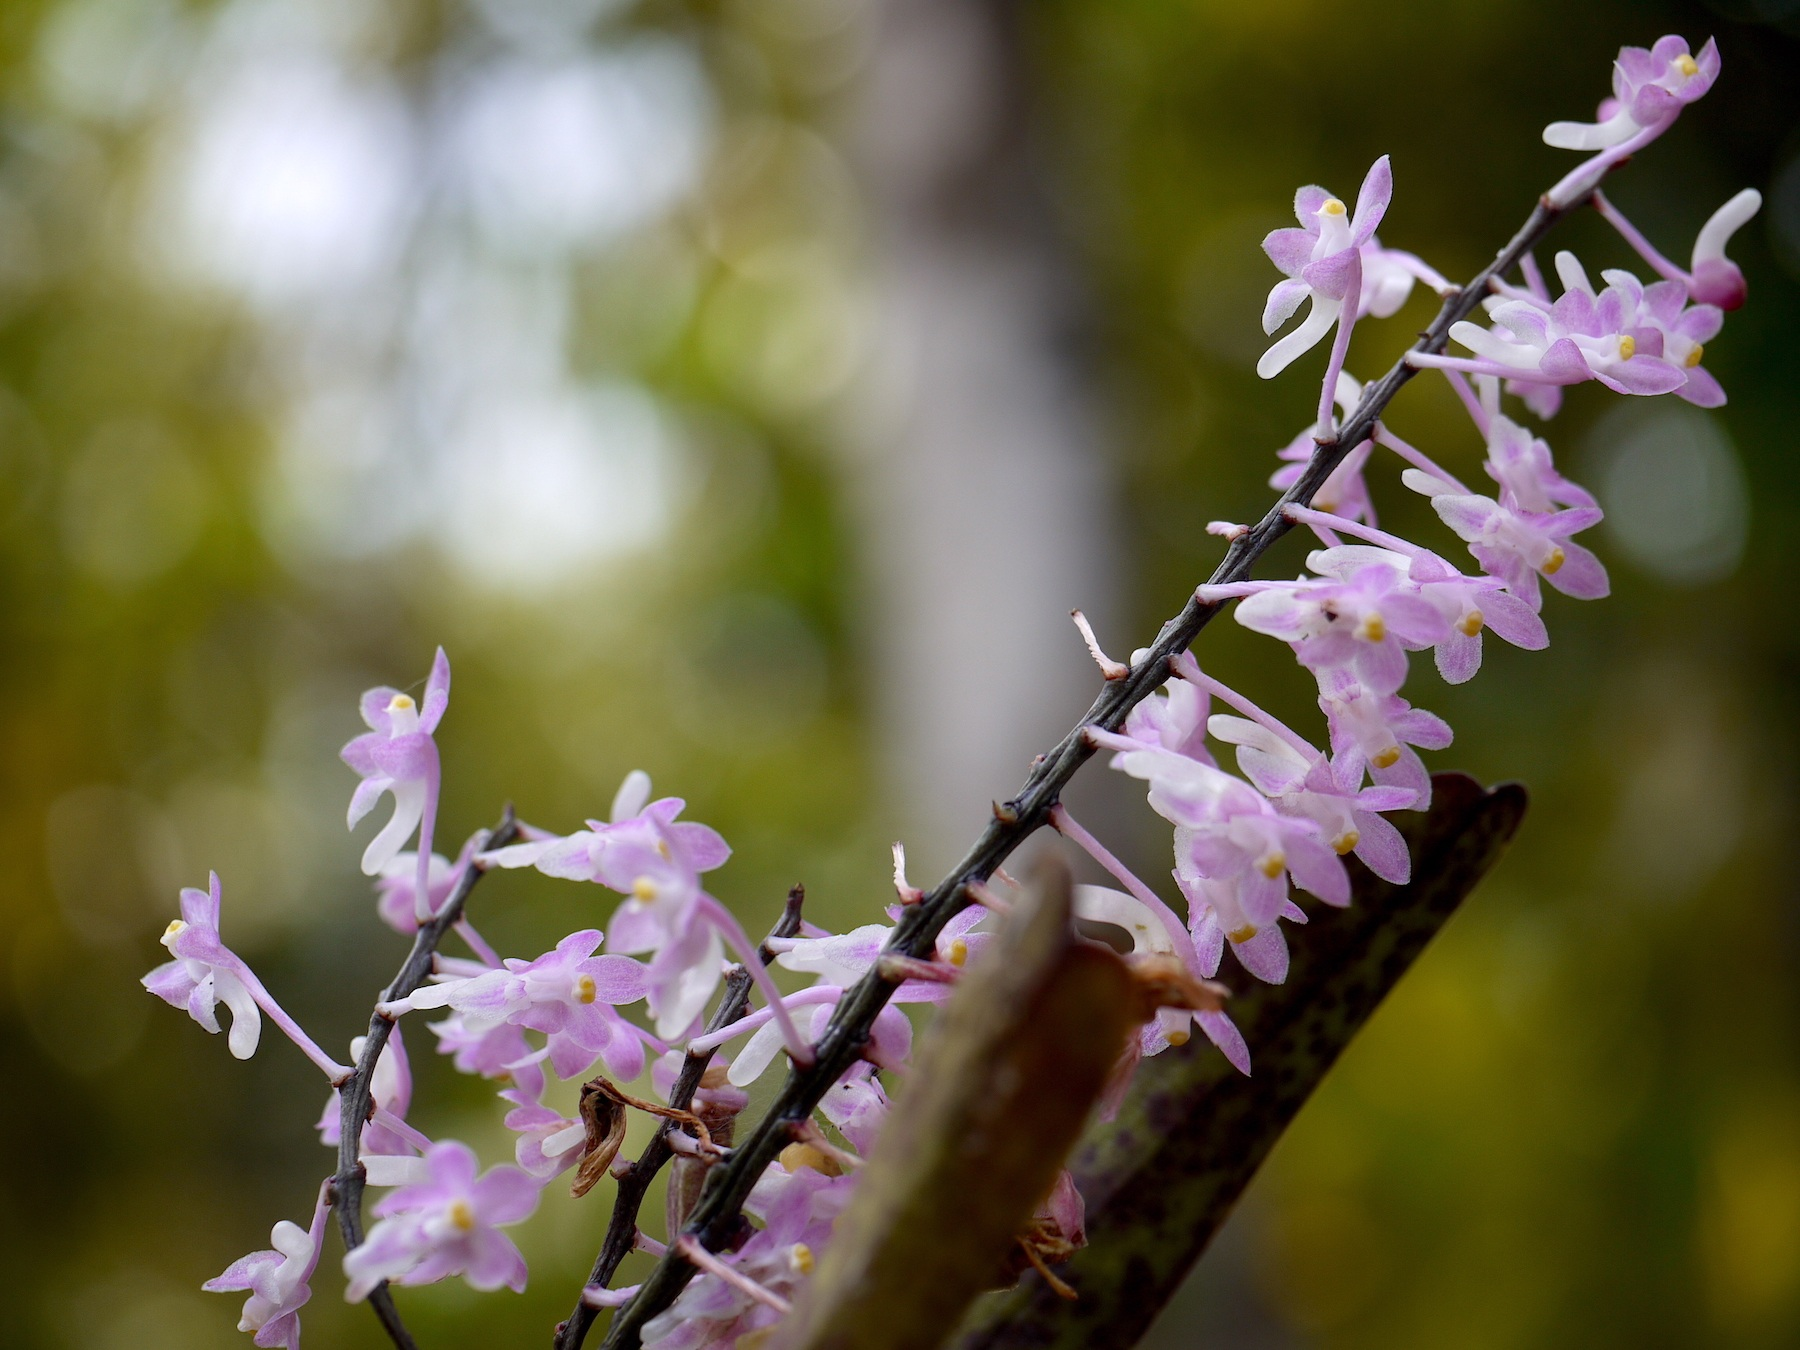 Aerides ringens (Lindl.) Fischer, an orchid that is endemic to the Western Ghats, exhibits multi-branched inflorescence with fragrant flowers in white to dark pink. Photo: Dinesh Valke / CC BY-SA 2.0